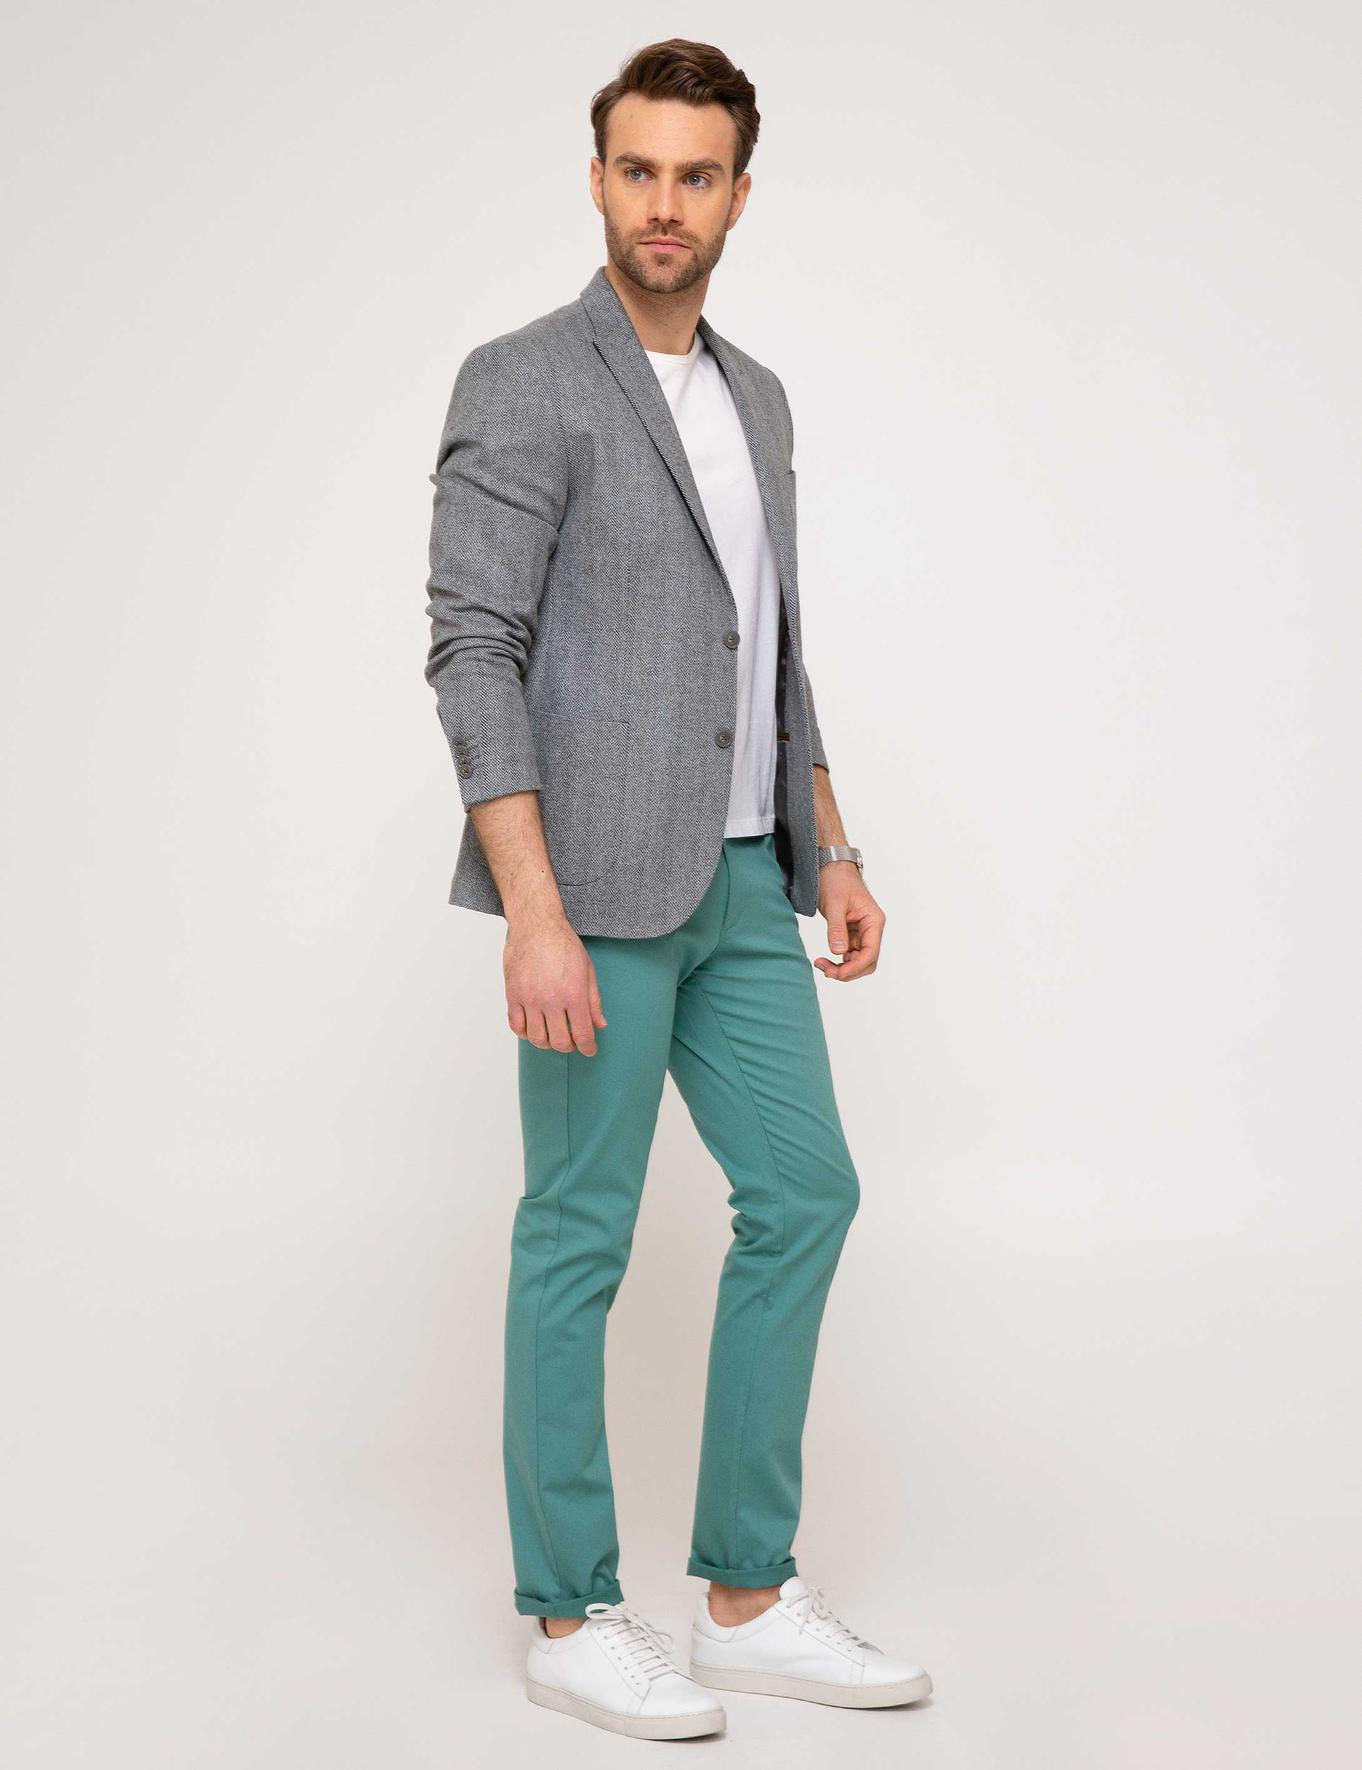 Nil Yeşil Slim Fit Chino Pantolon